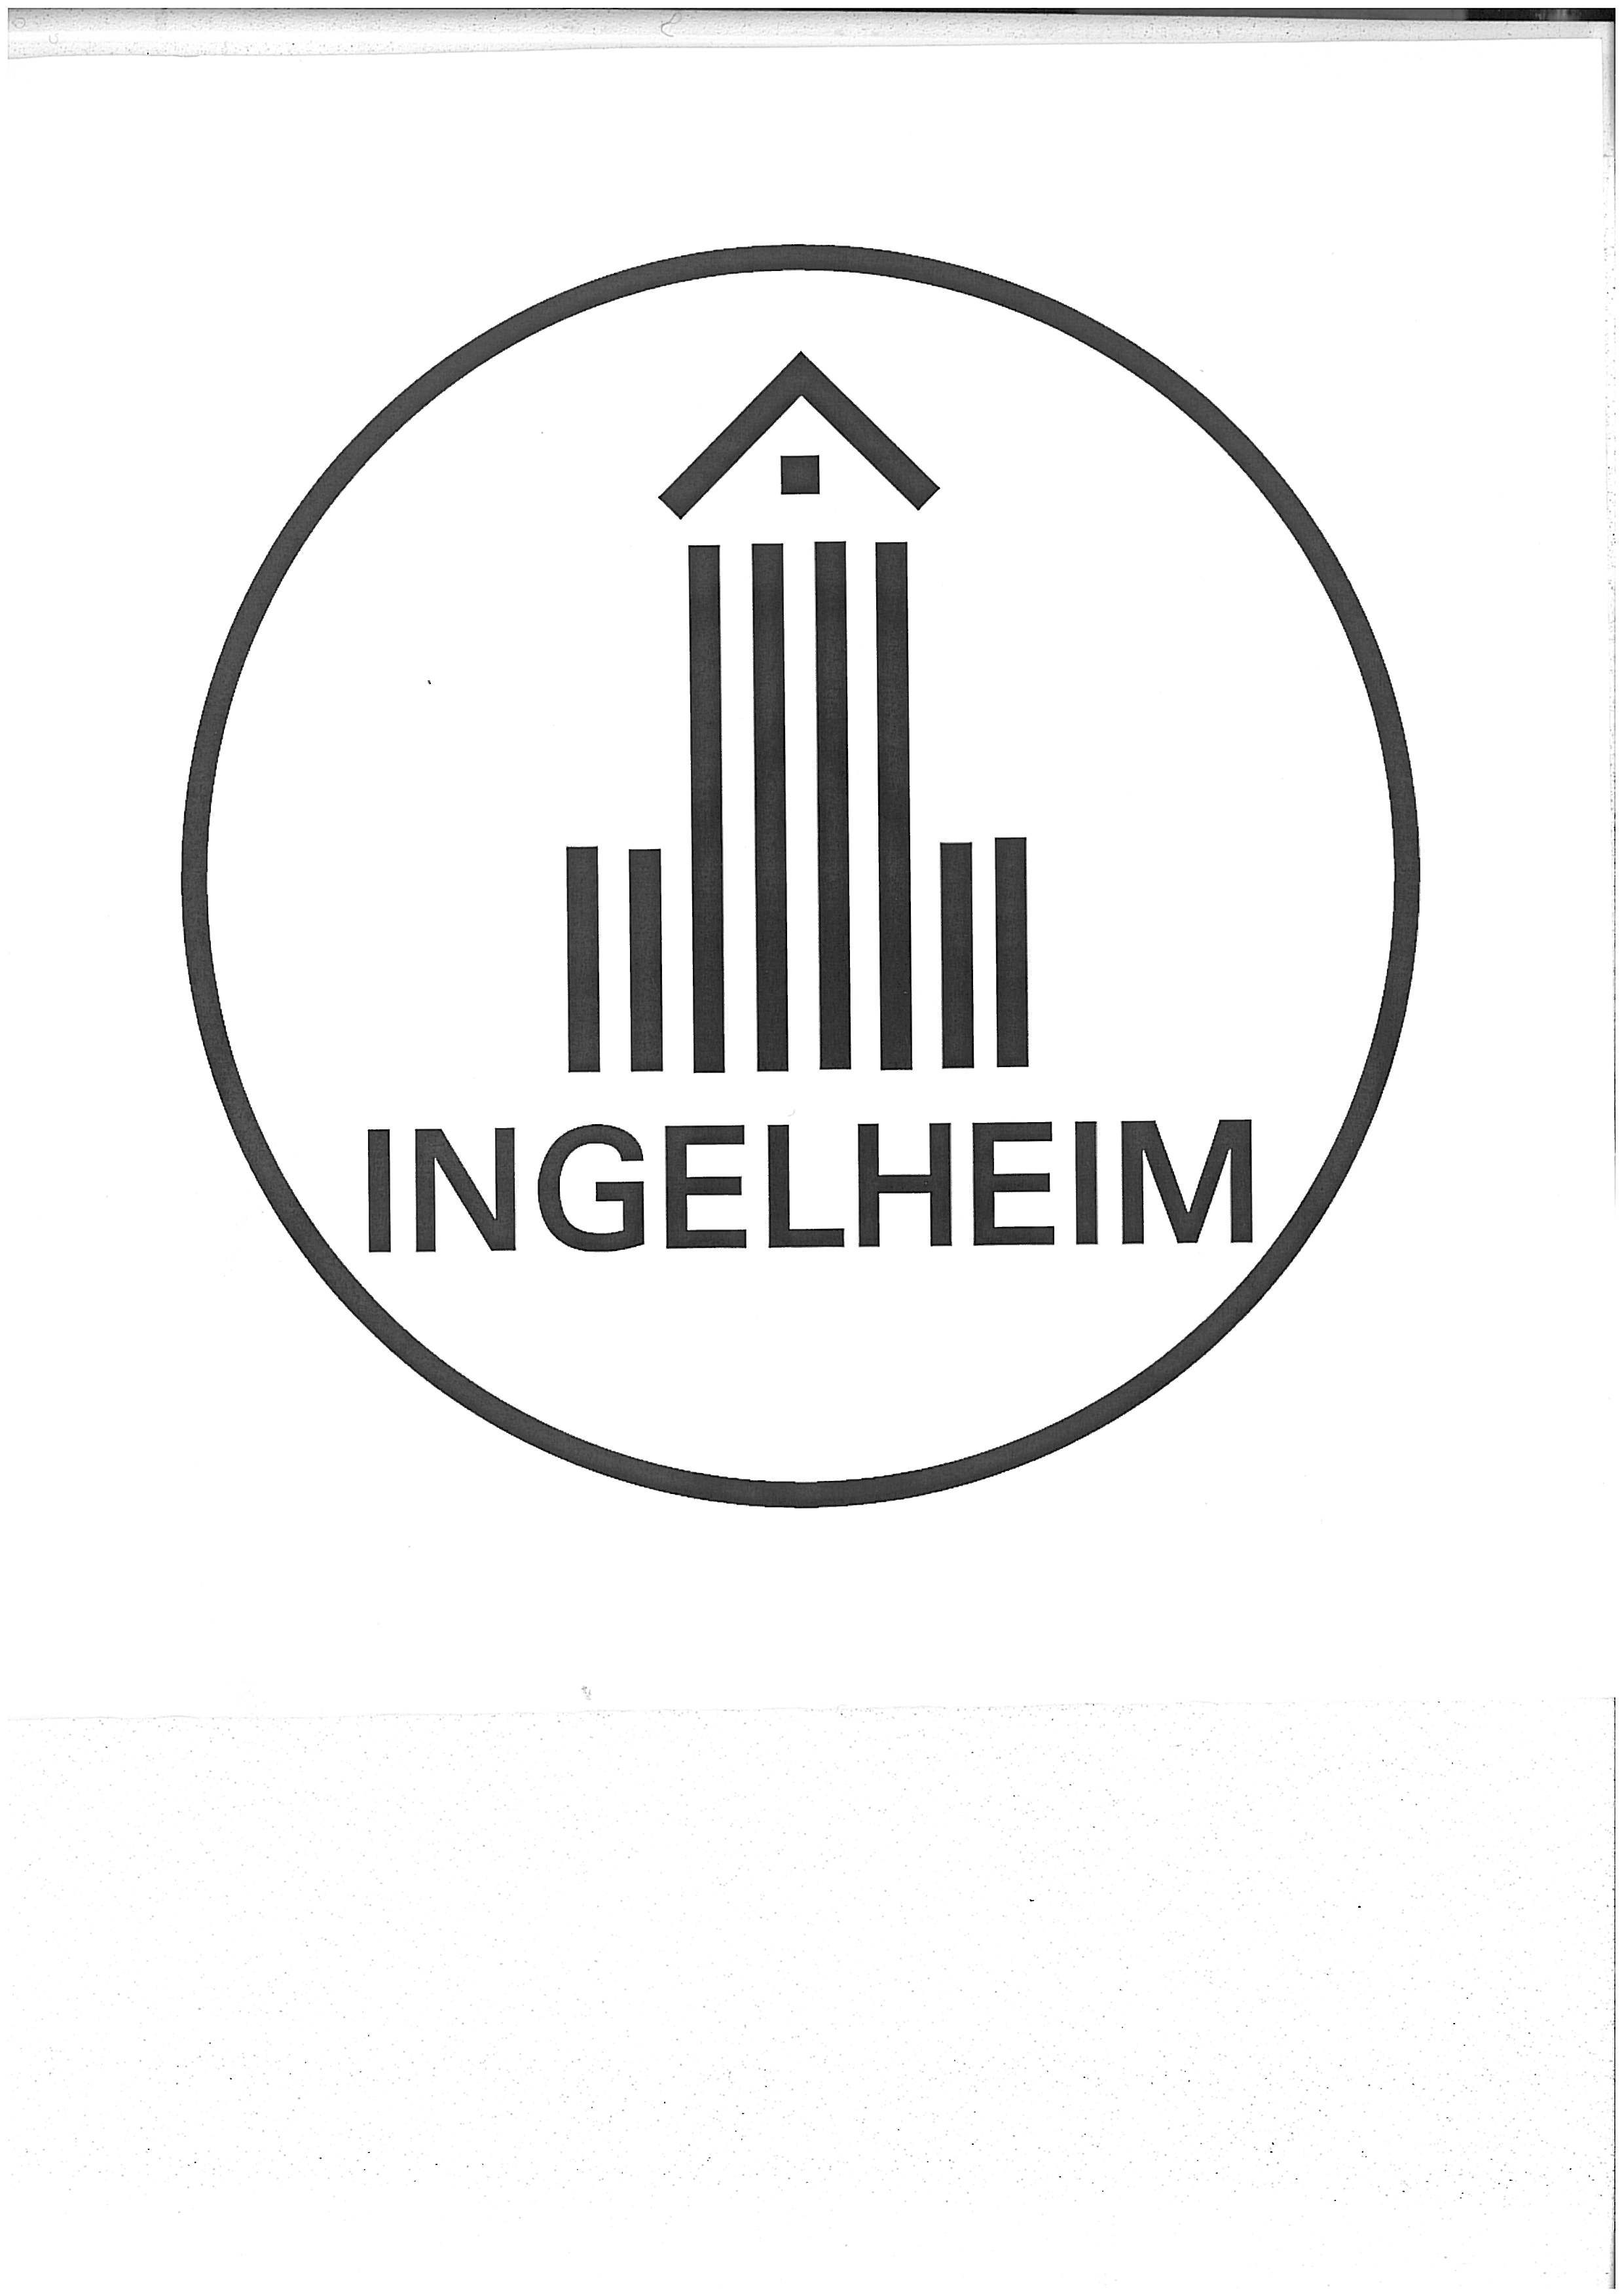 From 19241962 the logo has been stylized.